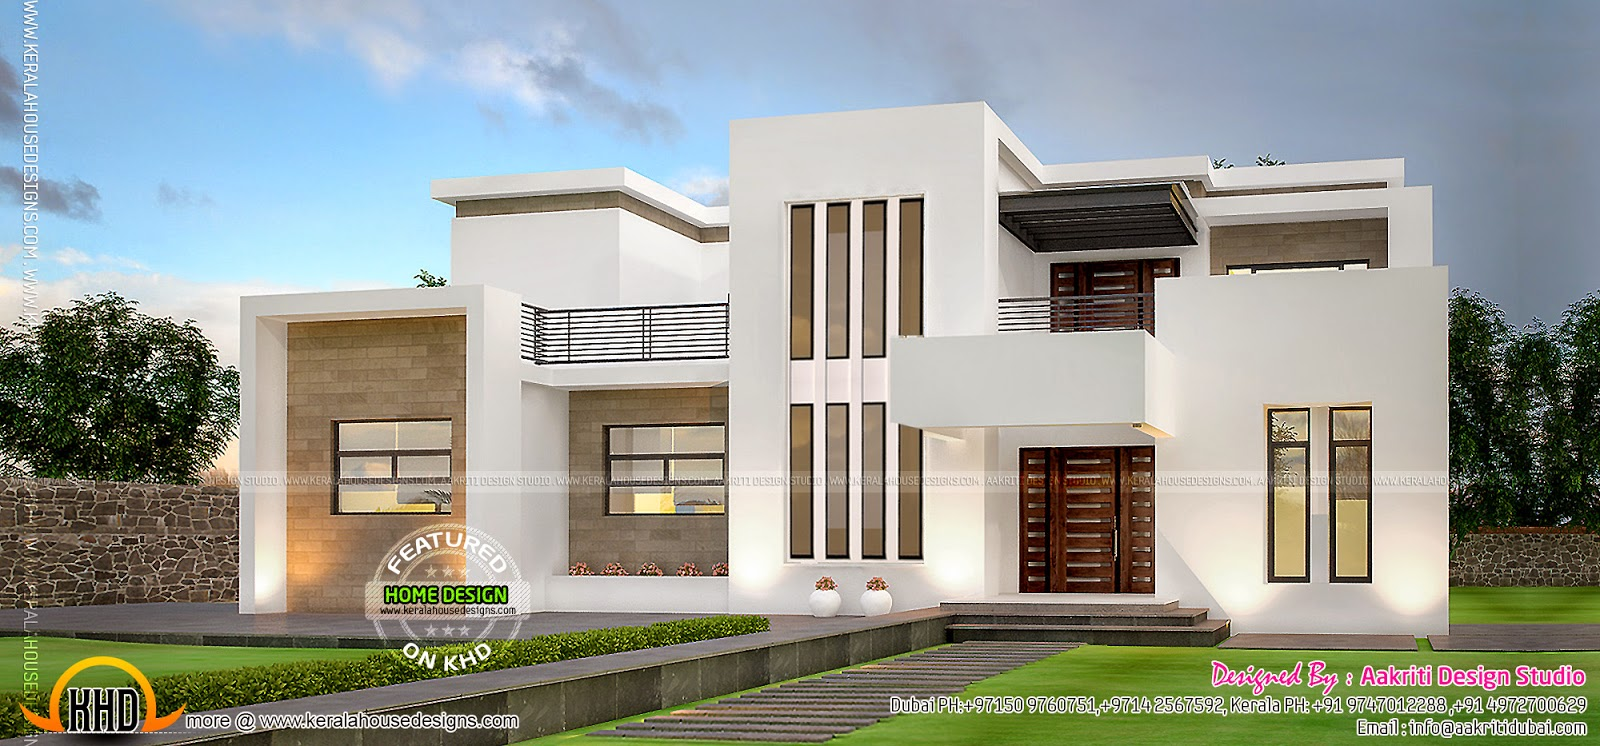 Very beautiful house keralahousedesigns for Very beautiful house